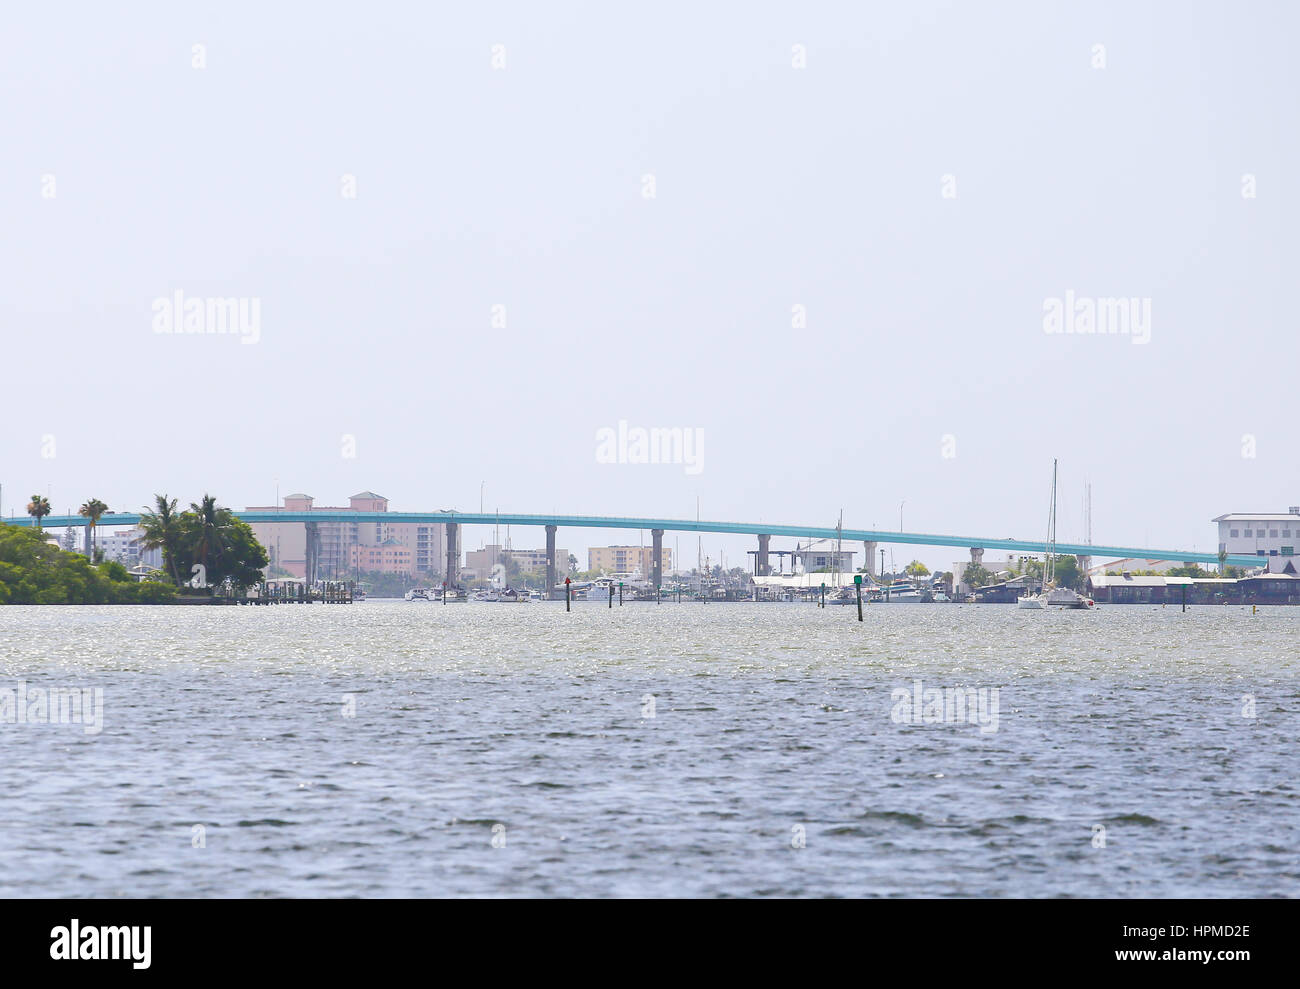 Fort Myers Beach, USA - MAY 11, 2015: Matanzas Pass Bridge connecting Estero Island with Florida mainland seen from Stock Photo